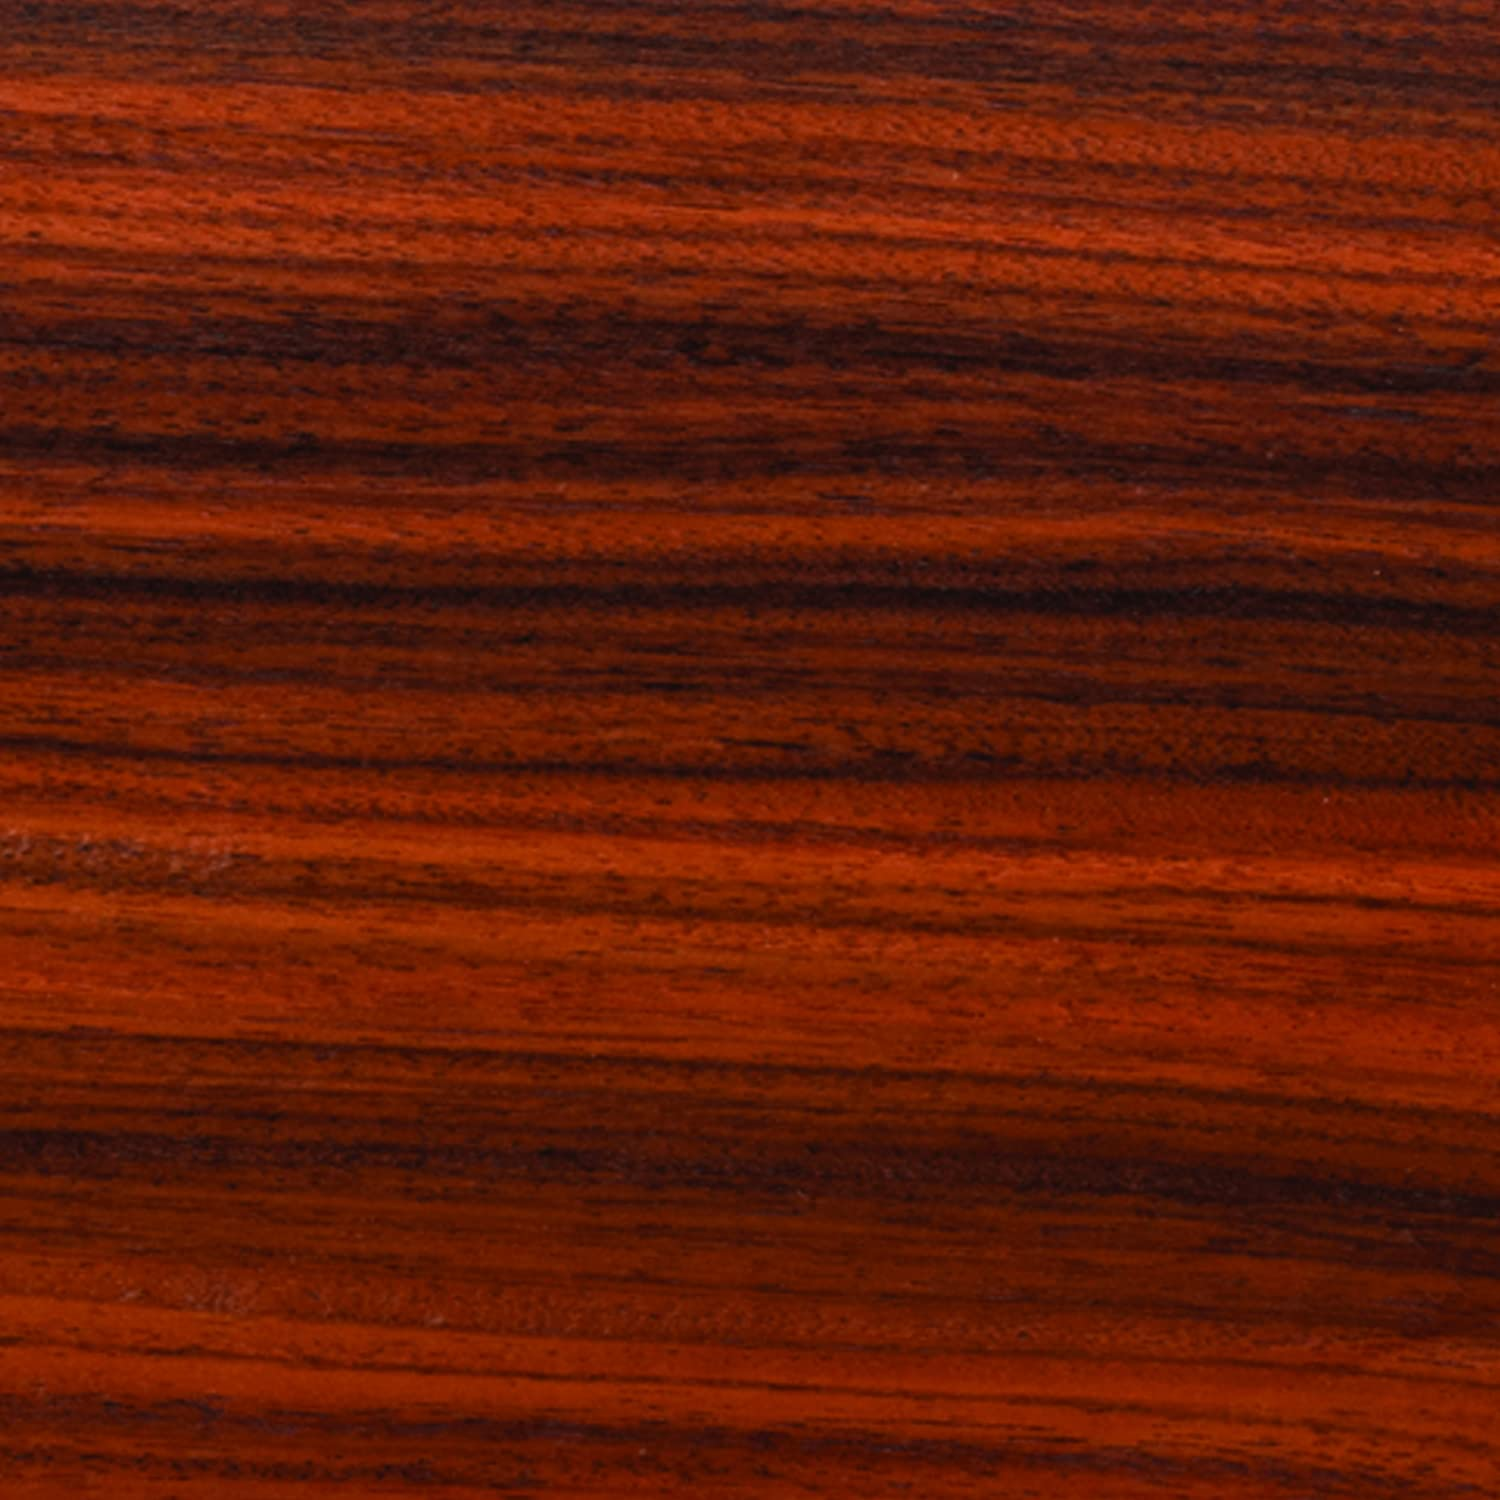 Super beauty product restock quality top Bolivian New color Rosewood 1 4